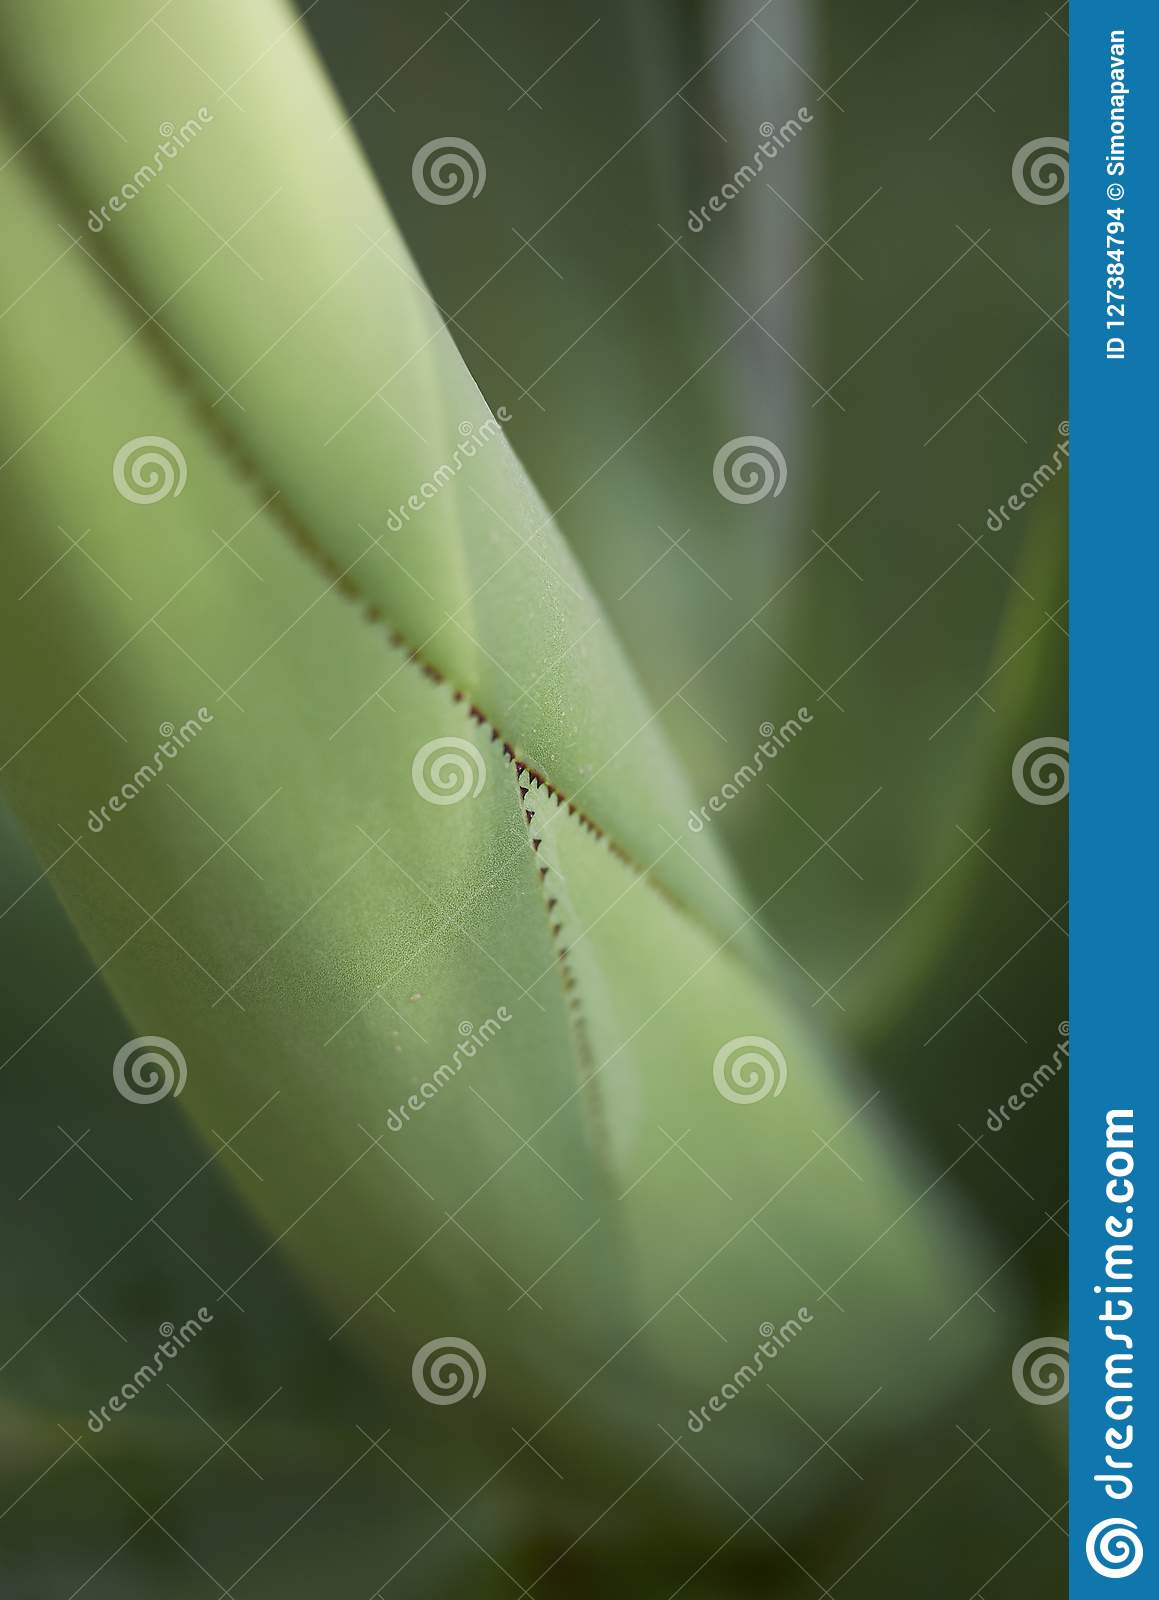 Leaves close up of Agave mitis